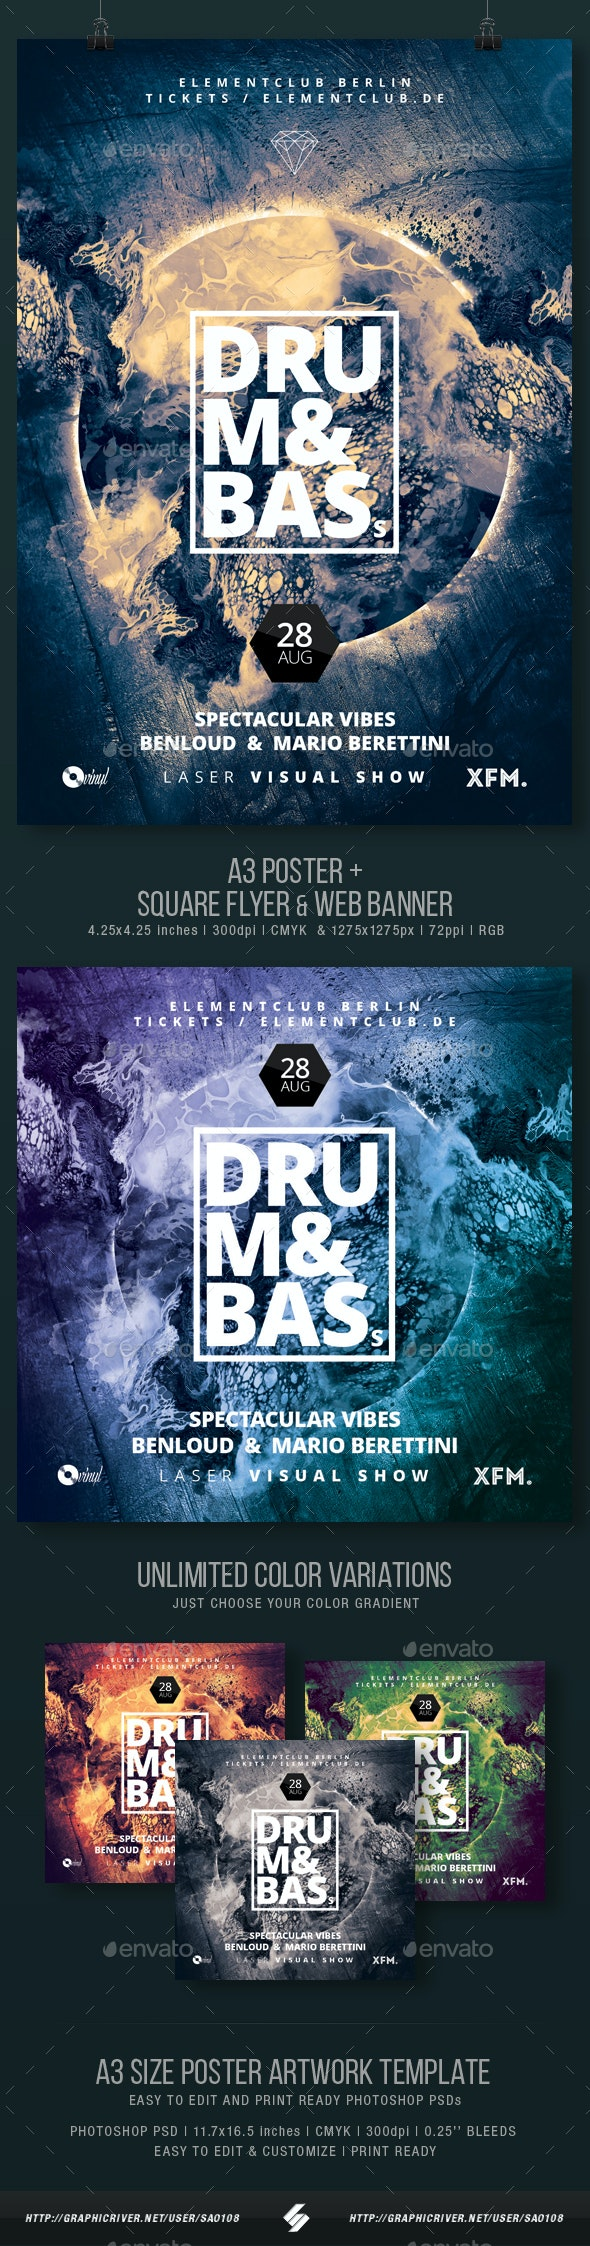 Drum and Bass vol.3 - Party Flyer / Poster Template A3 - Clubs & Parties Events